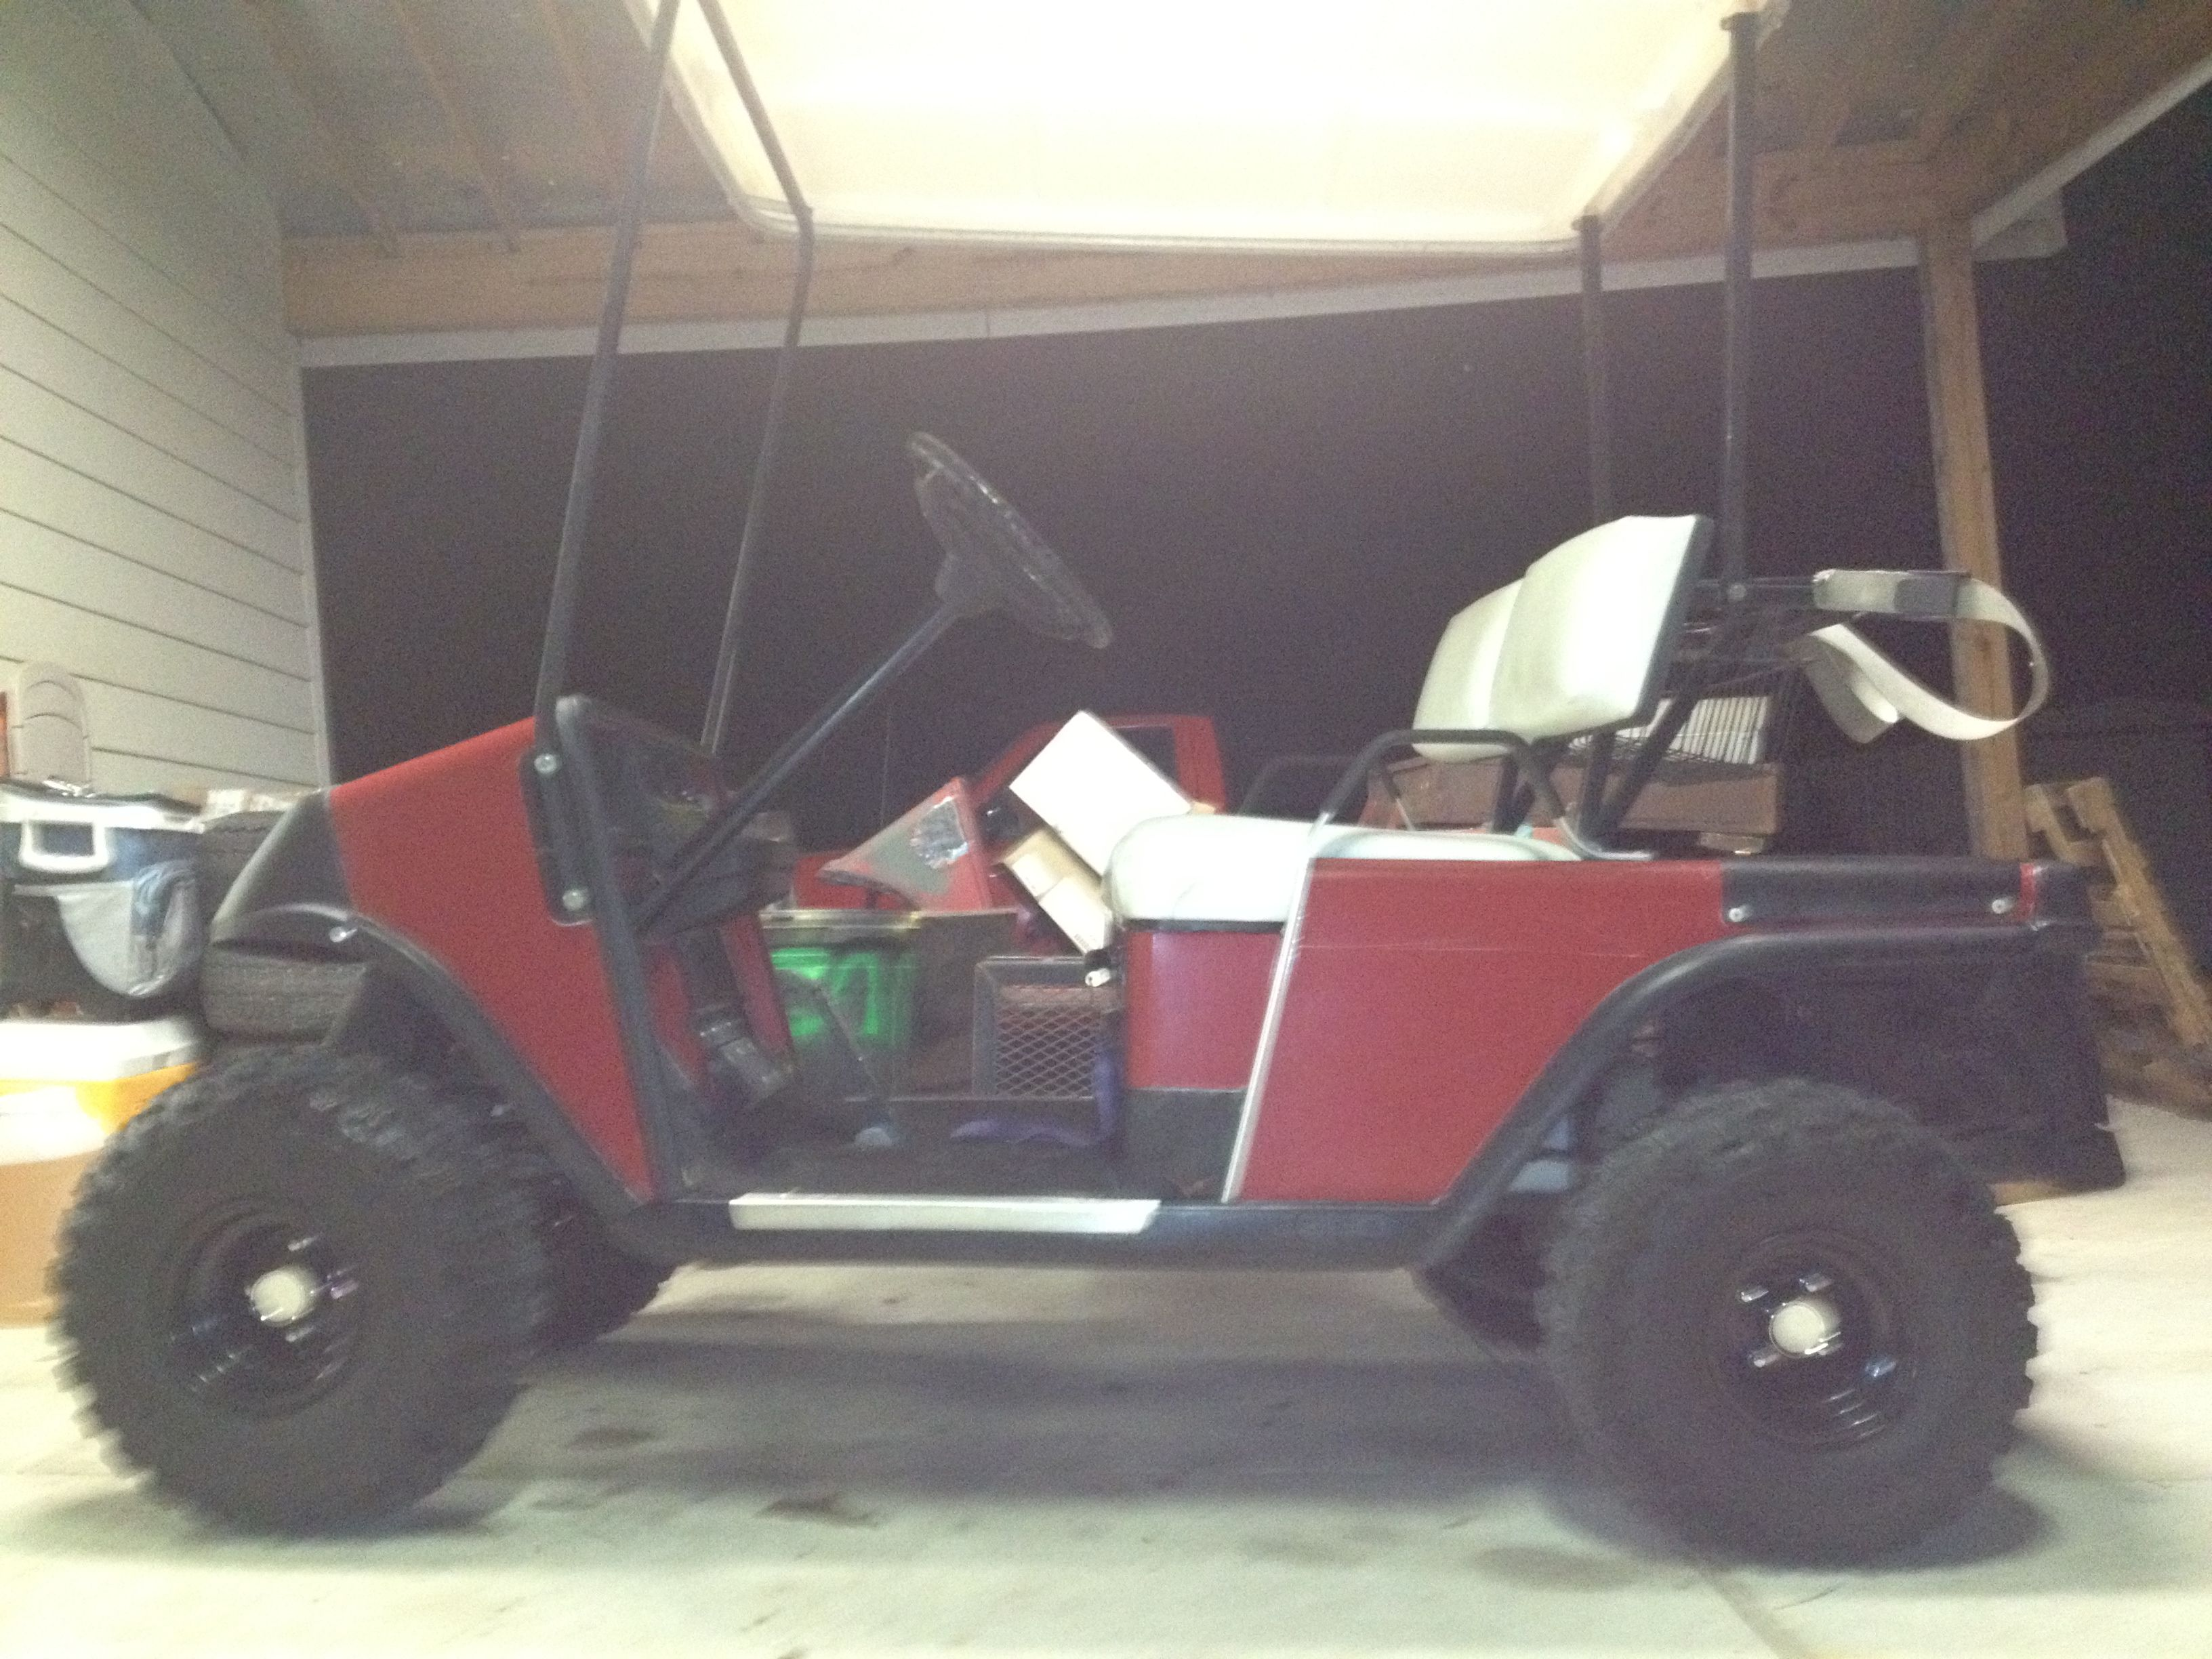 One Of A Kind Workhorse No Customs Ezgo T 2004 Mpt 800 Gas Wiring Diagram E Z Go Marathon Electric Low Budget Friese Build